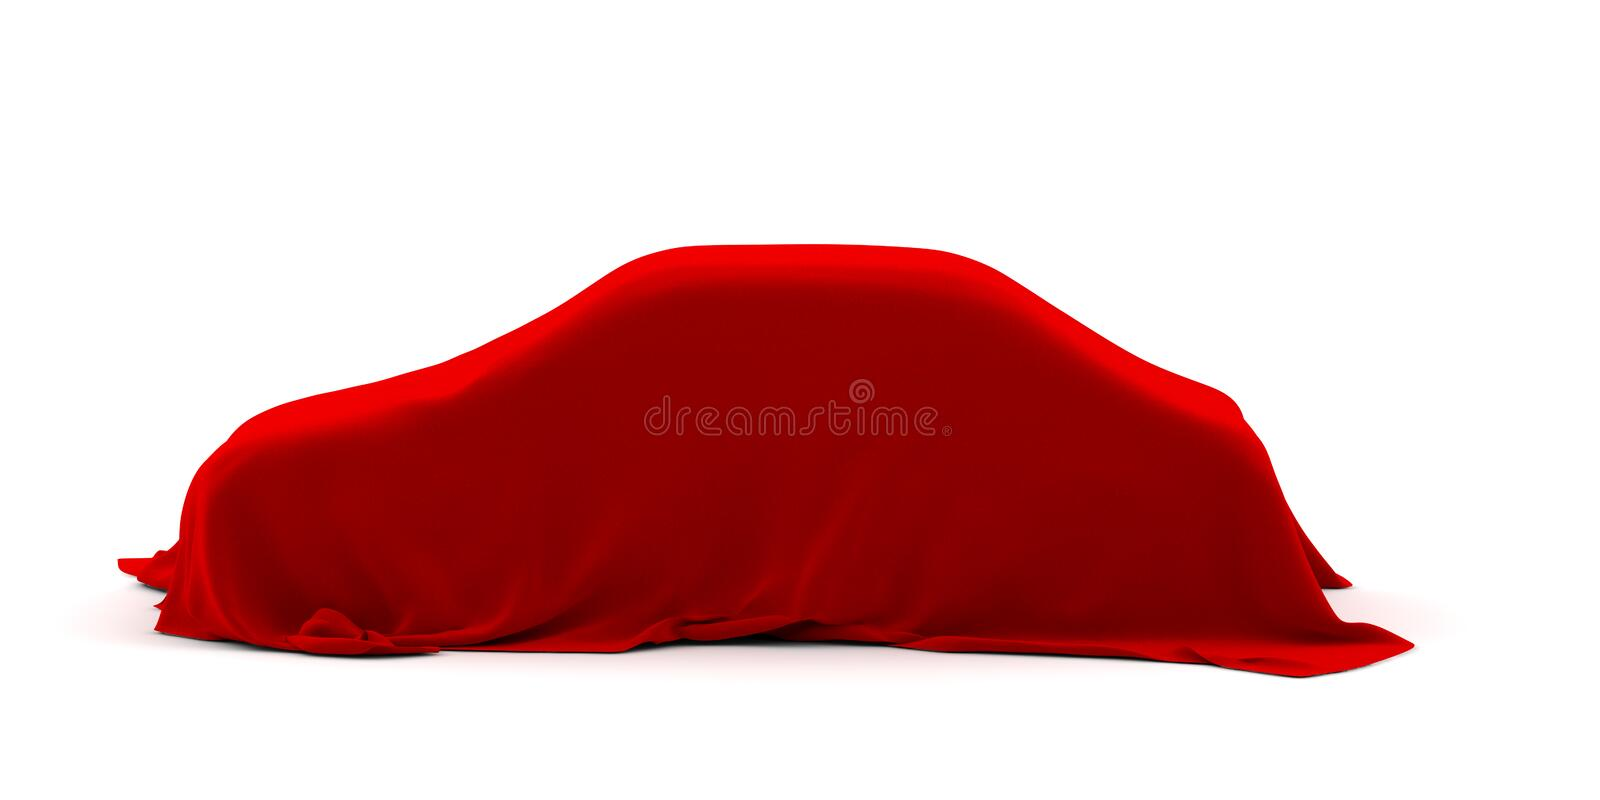 Download Incognito car stock illustration. Image of photorealistic - 17437286